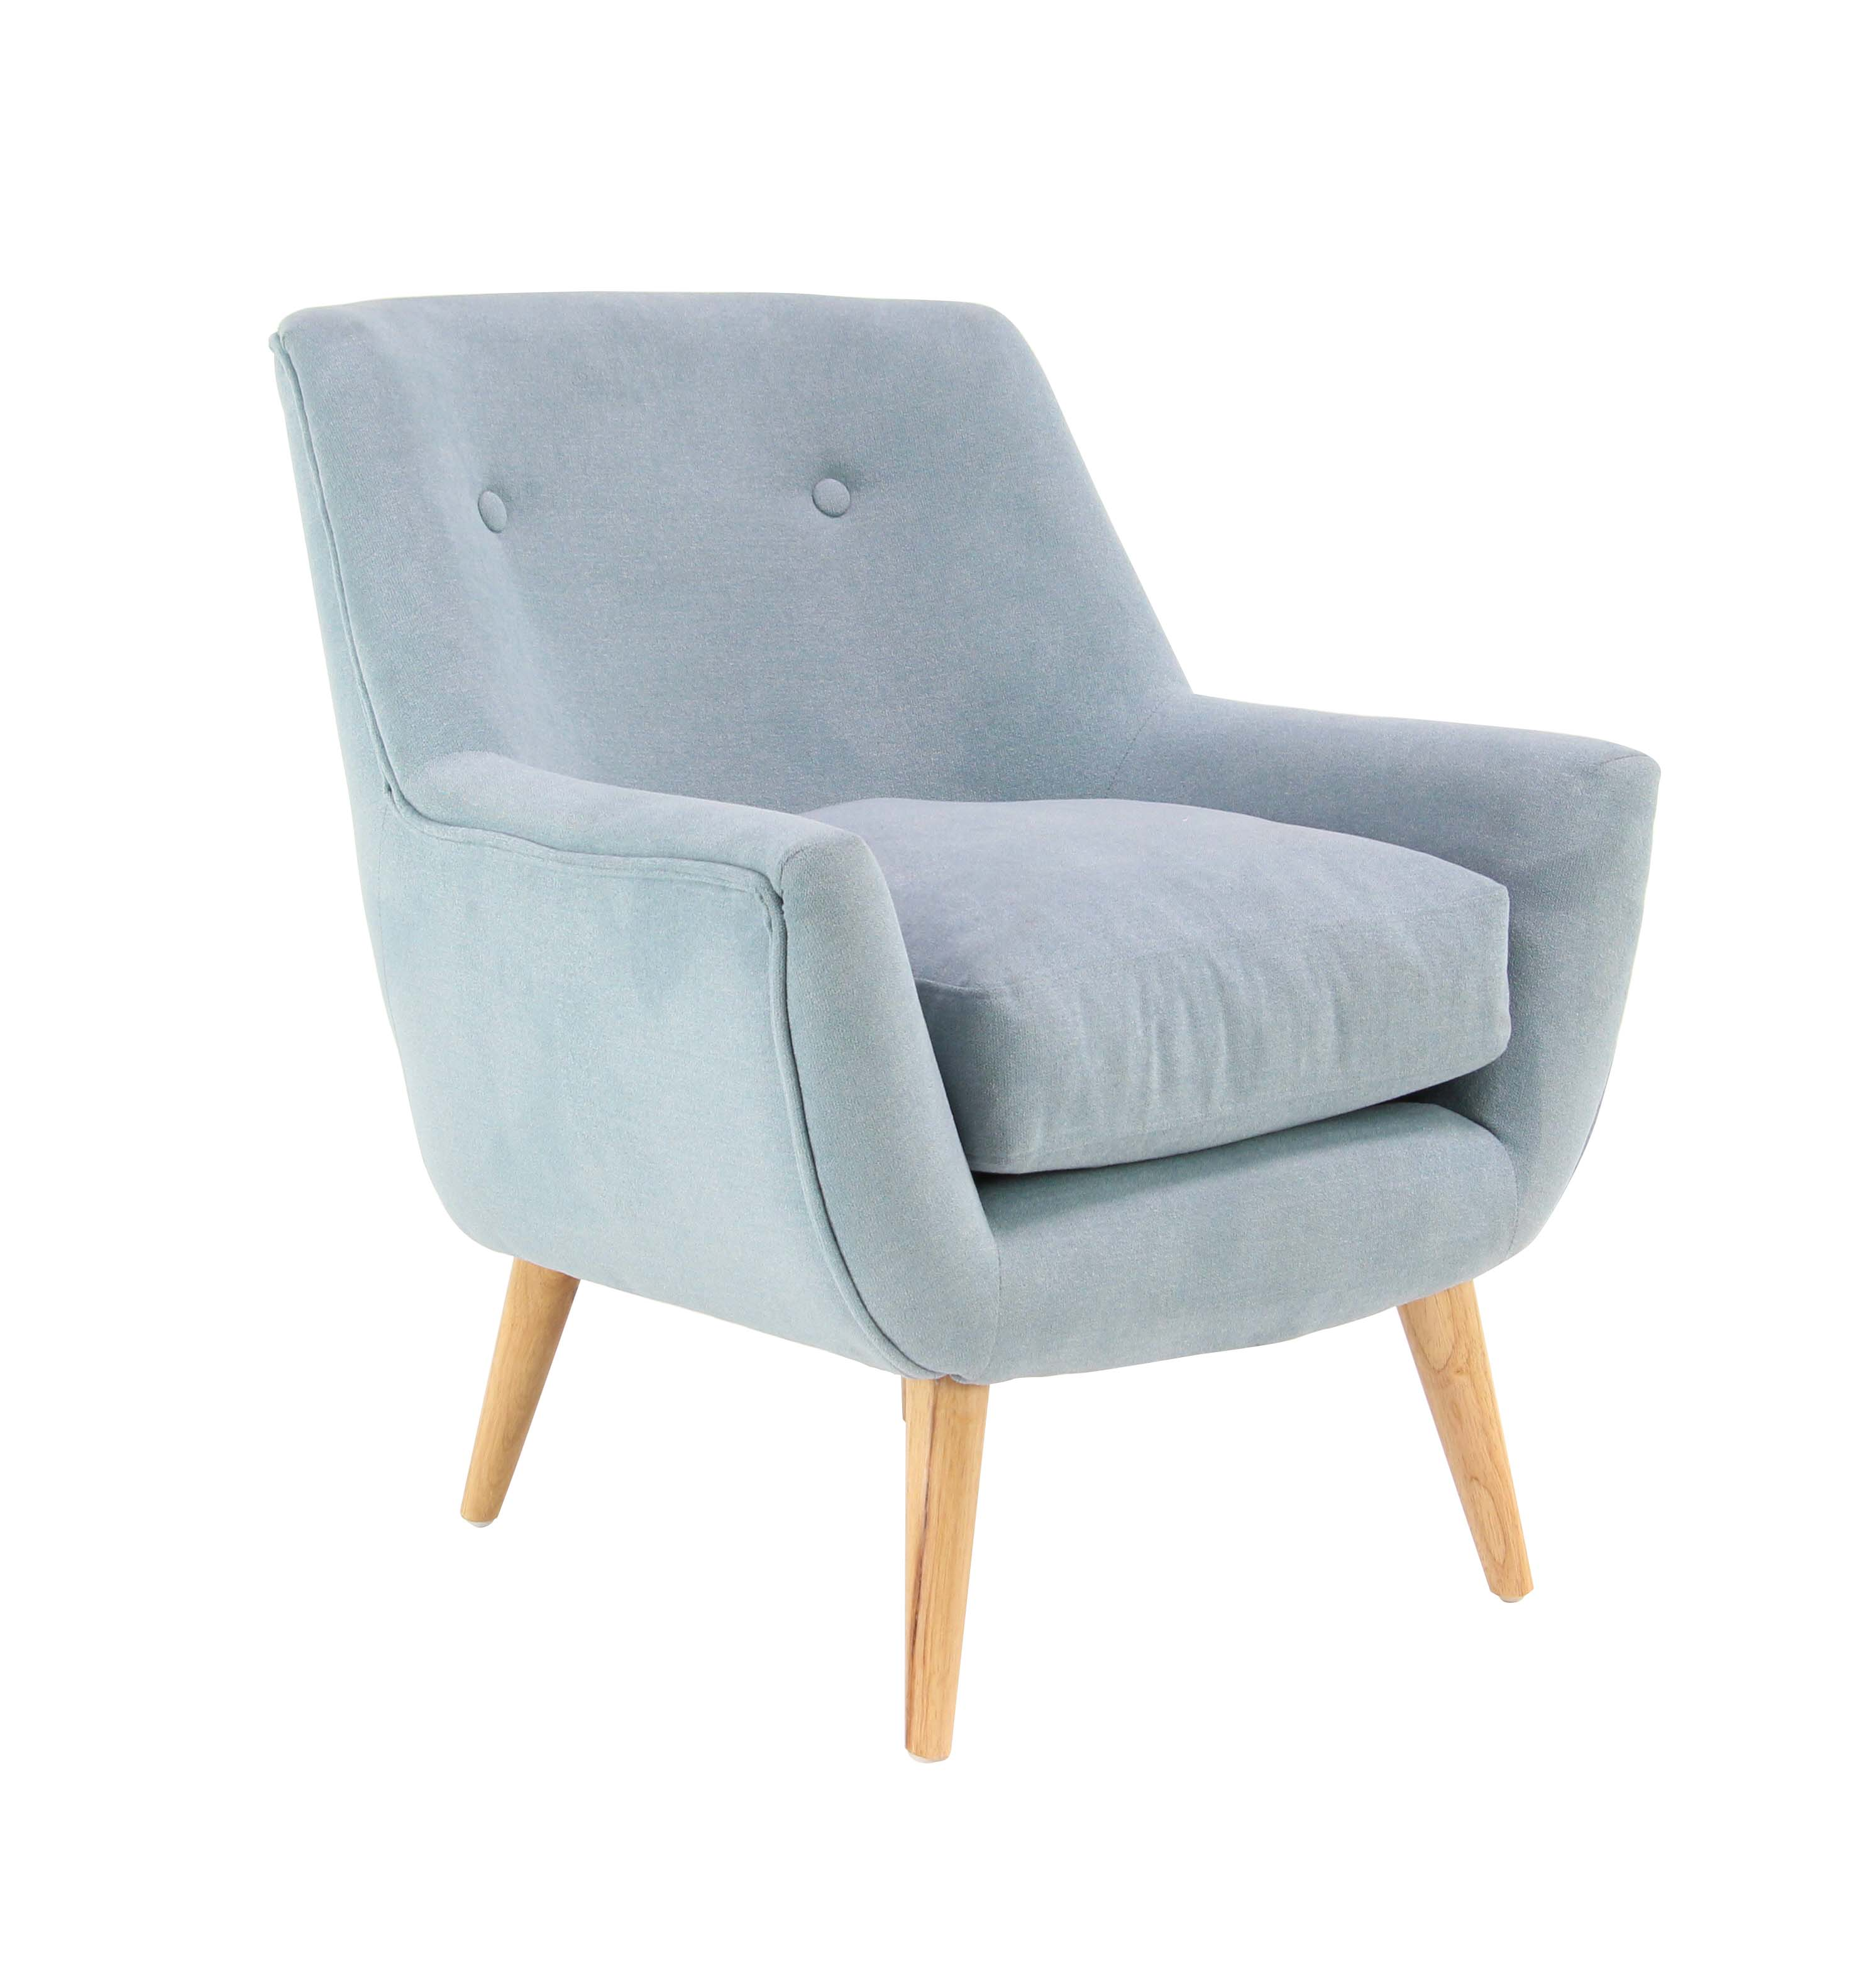 Decmode Modern Wood and Fabric Tufted Blue Armchair, Light Blue by DecMode